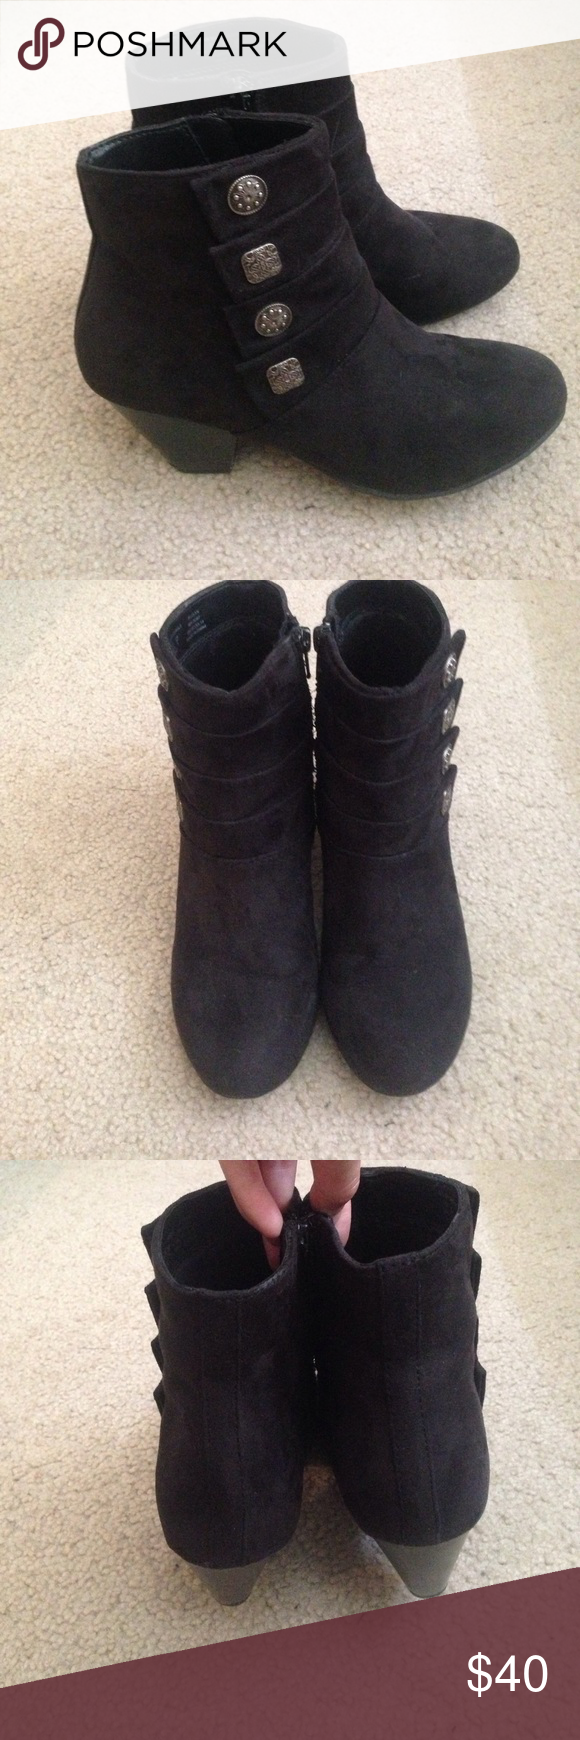 Cute Black Booties w/ 2in chunky heel These shoes are a size 6.5 and I wear a size 7. Beautiful shoes, great condition. They include zipper sides for slipping on without warping the shoe. Beautiful suede with no scuffs! Fits true to size.only worn a few times!! Covington Shoes Ankle Boots & Booties